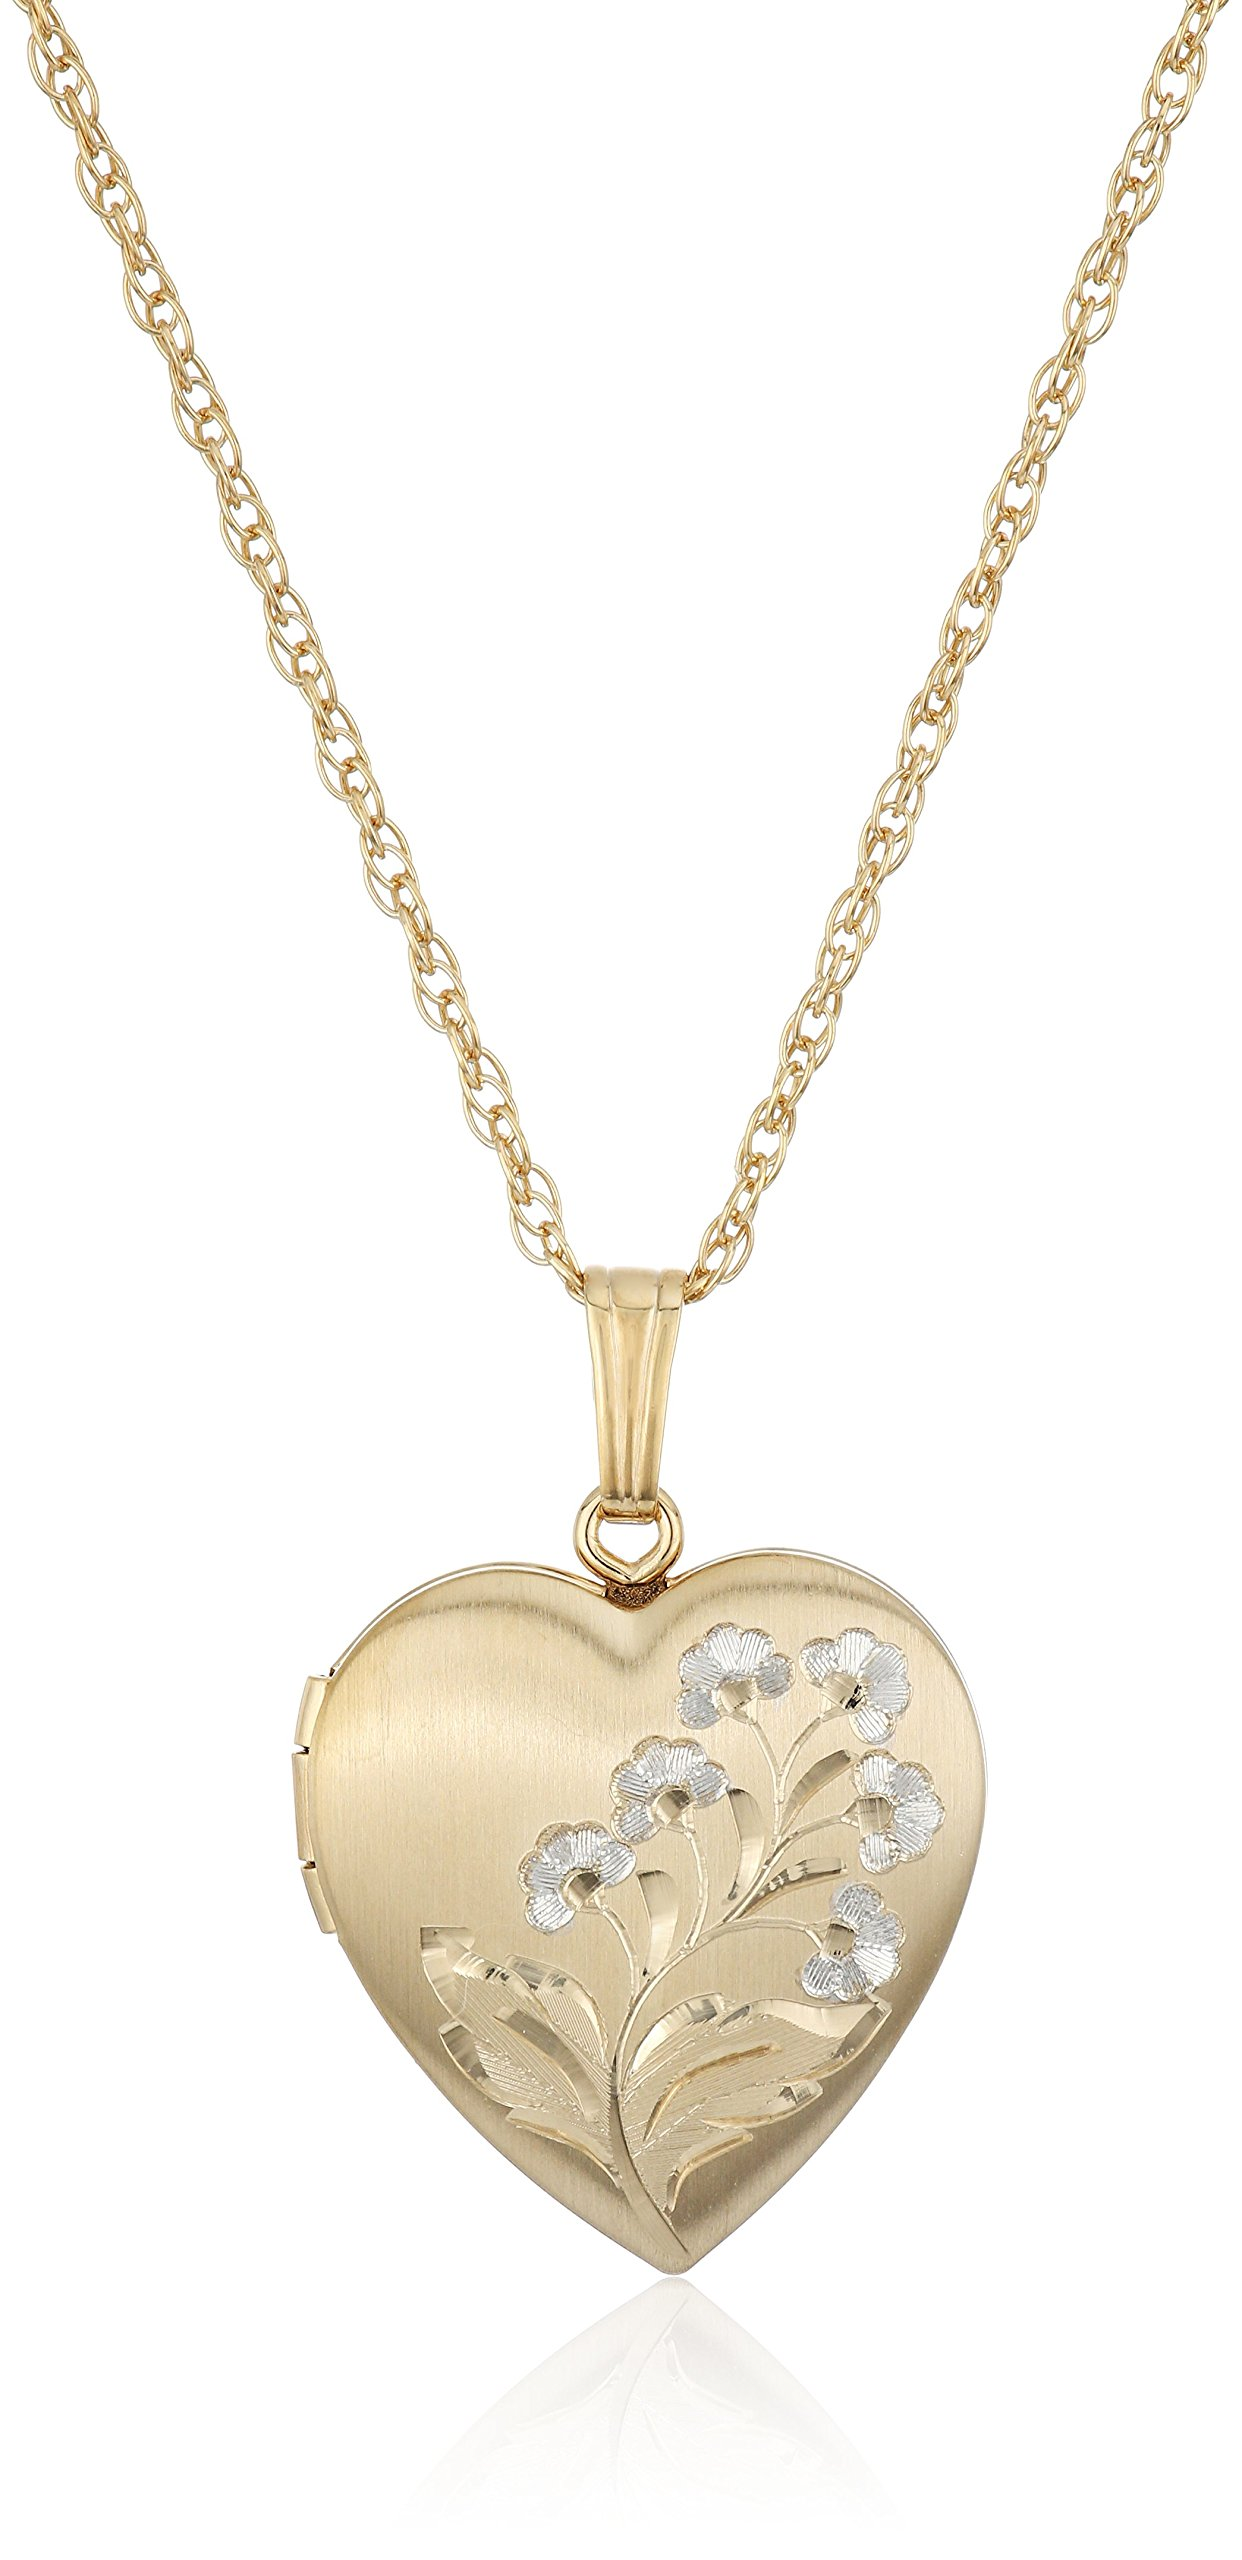 14k Gold-Filled Two-Tone Hand-Engraved Heart Locket Necklace, 18''